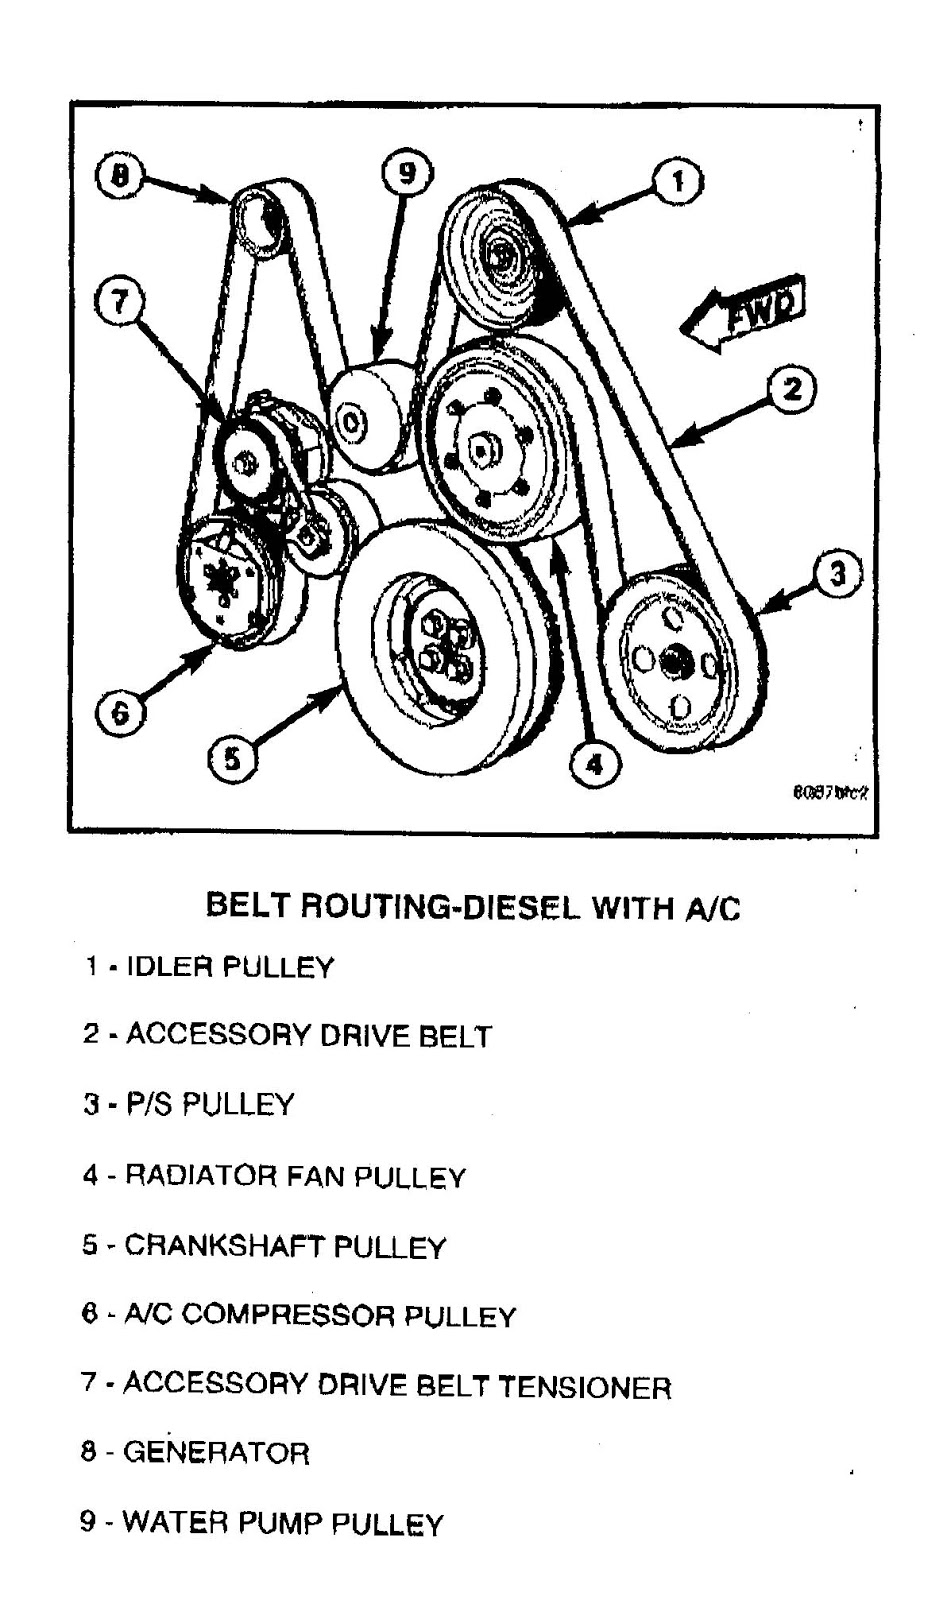 2008 Dodge Ram 2500 Belt Diagram Best Secret Wiring Kia Sorento Belts Zara Images Diesel Serpentine Replacement